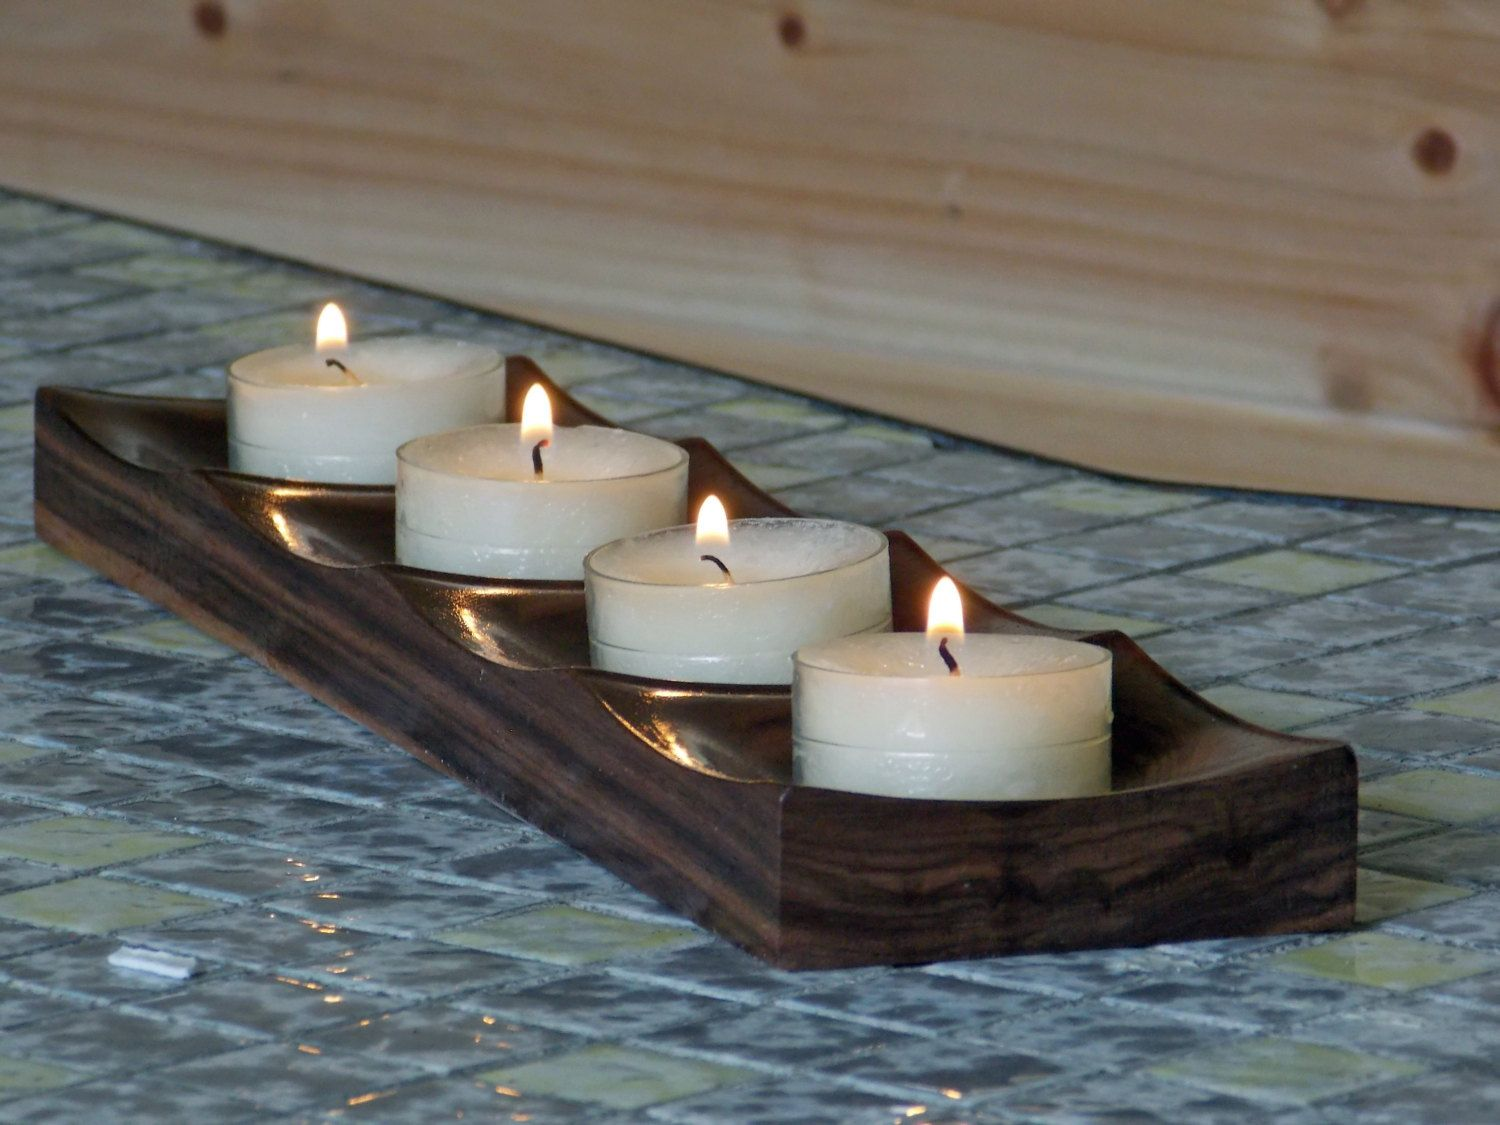 Wooden Tealight Candle Holder Rustic Wedding Decor Wooden Tea Light Candle Holder Wedding Candle Centerpiece Bathroom Candle Decor Bougeoirs